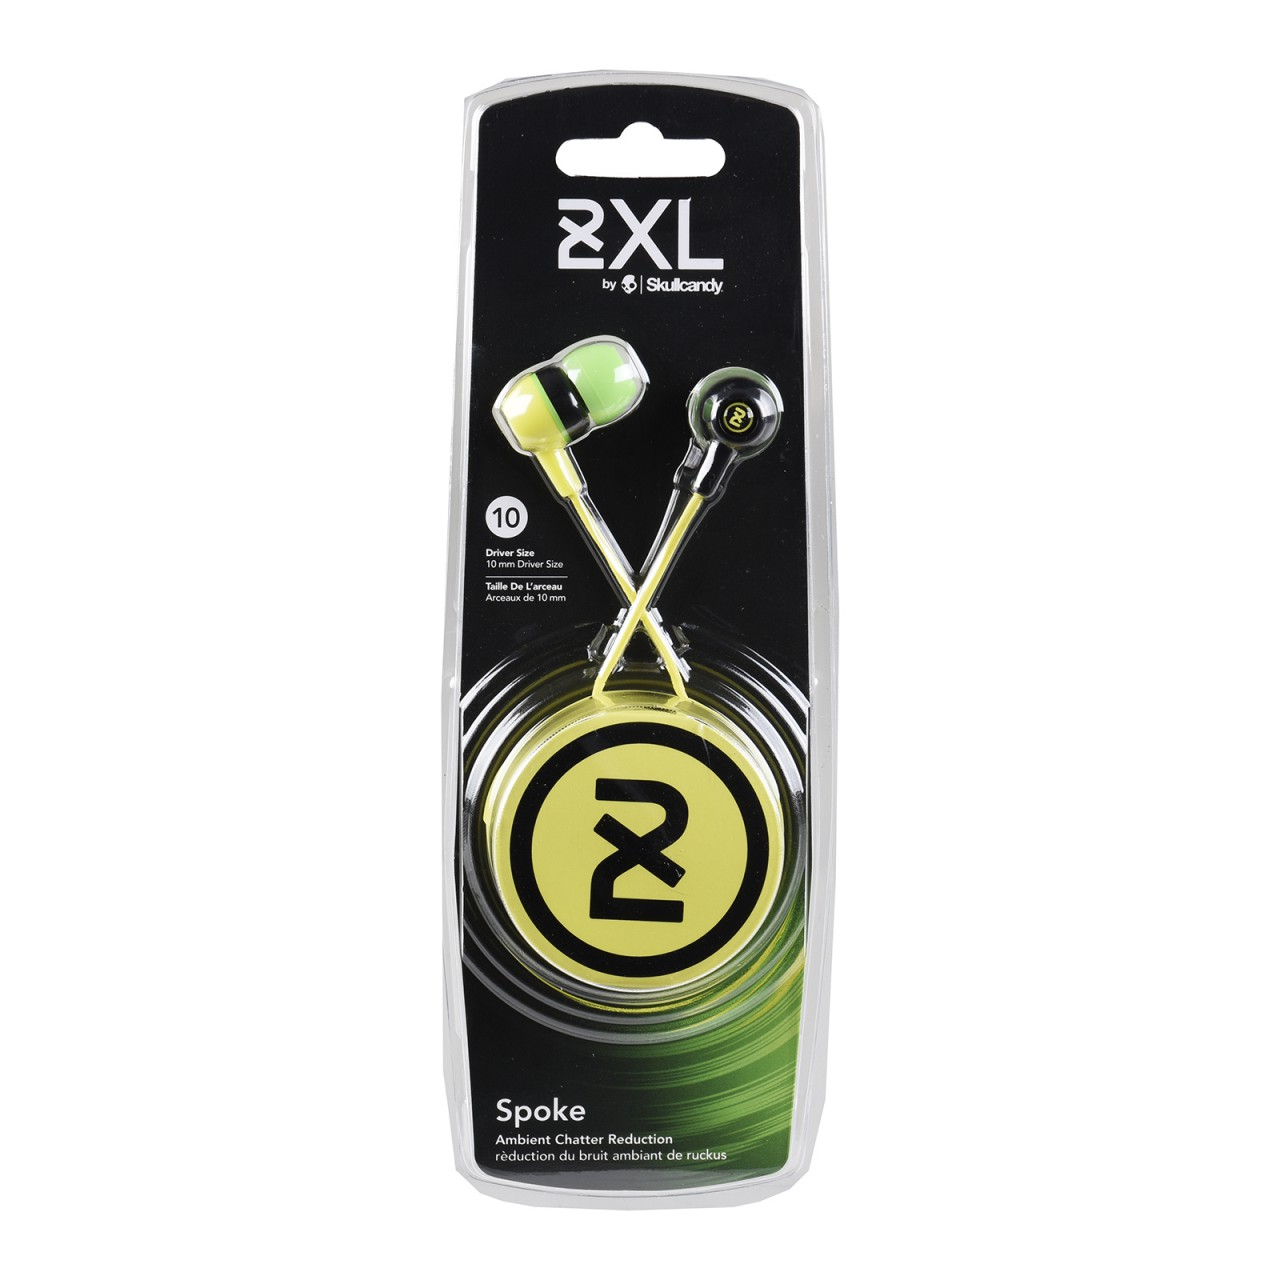 SKULLCANDY Spoke In-Ear Headphones in black / green